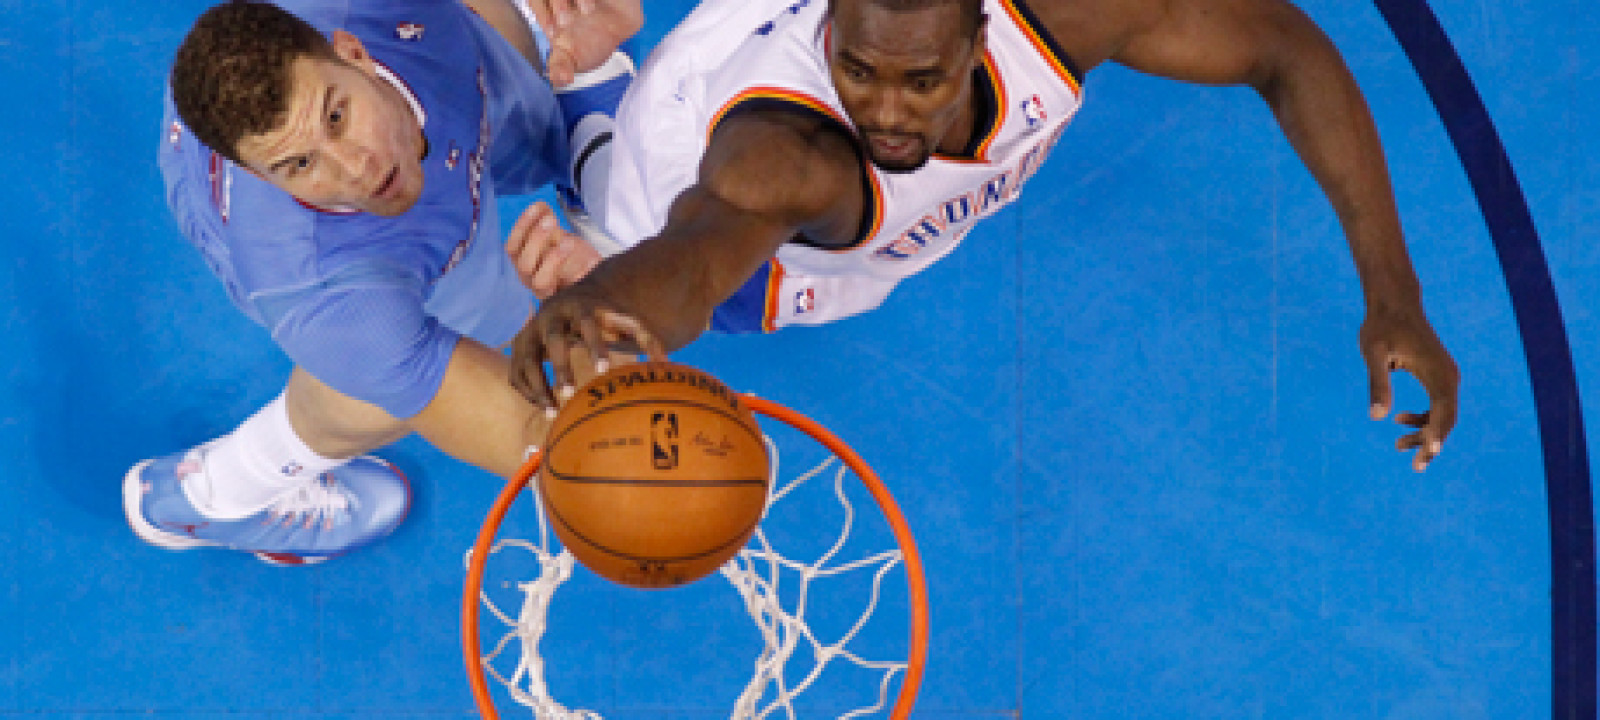 460x300_clippersthunder